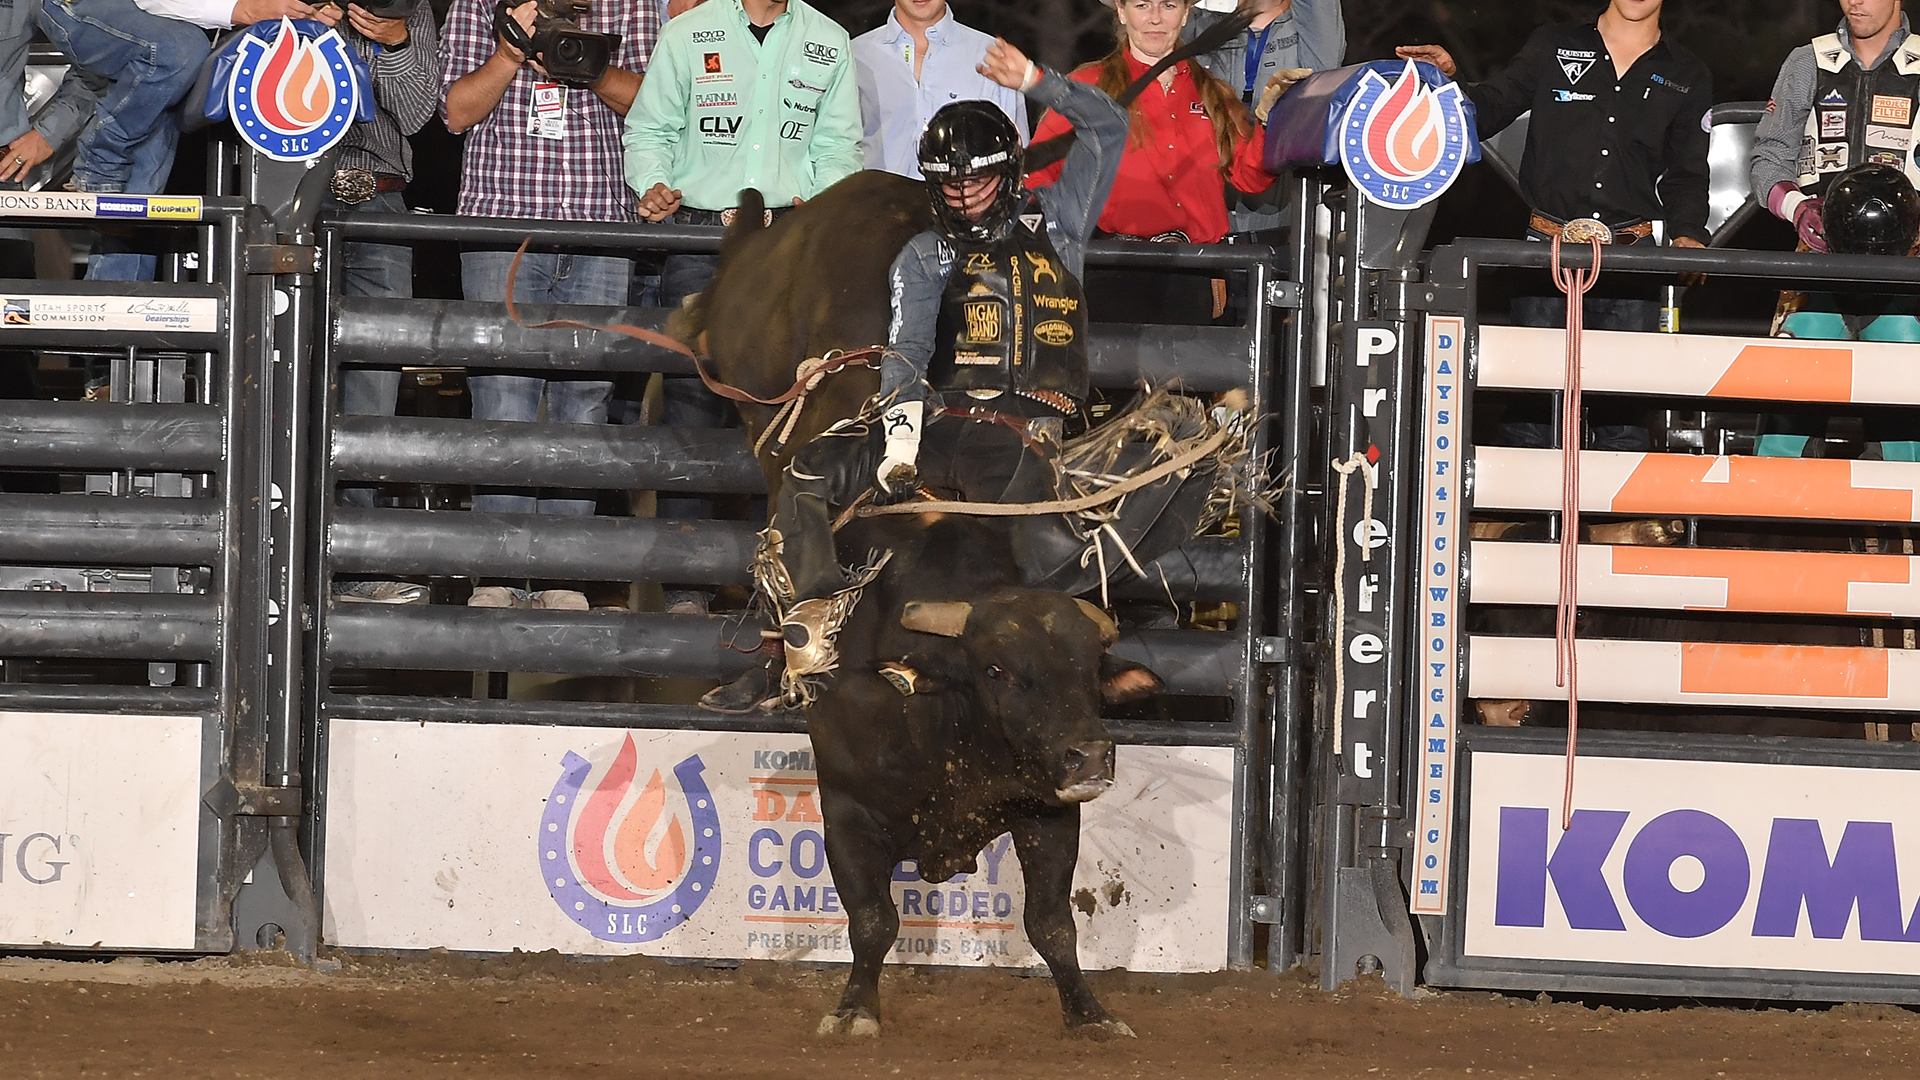 """PBR launches """"Summer of Rodeo Series,"""" available on CBS Sports"""